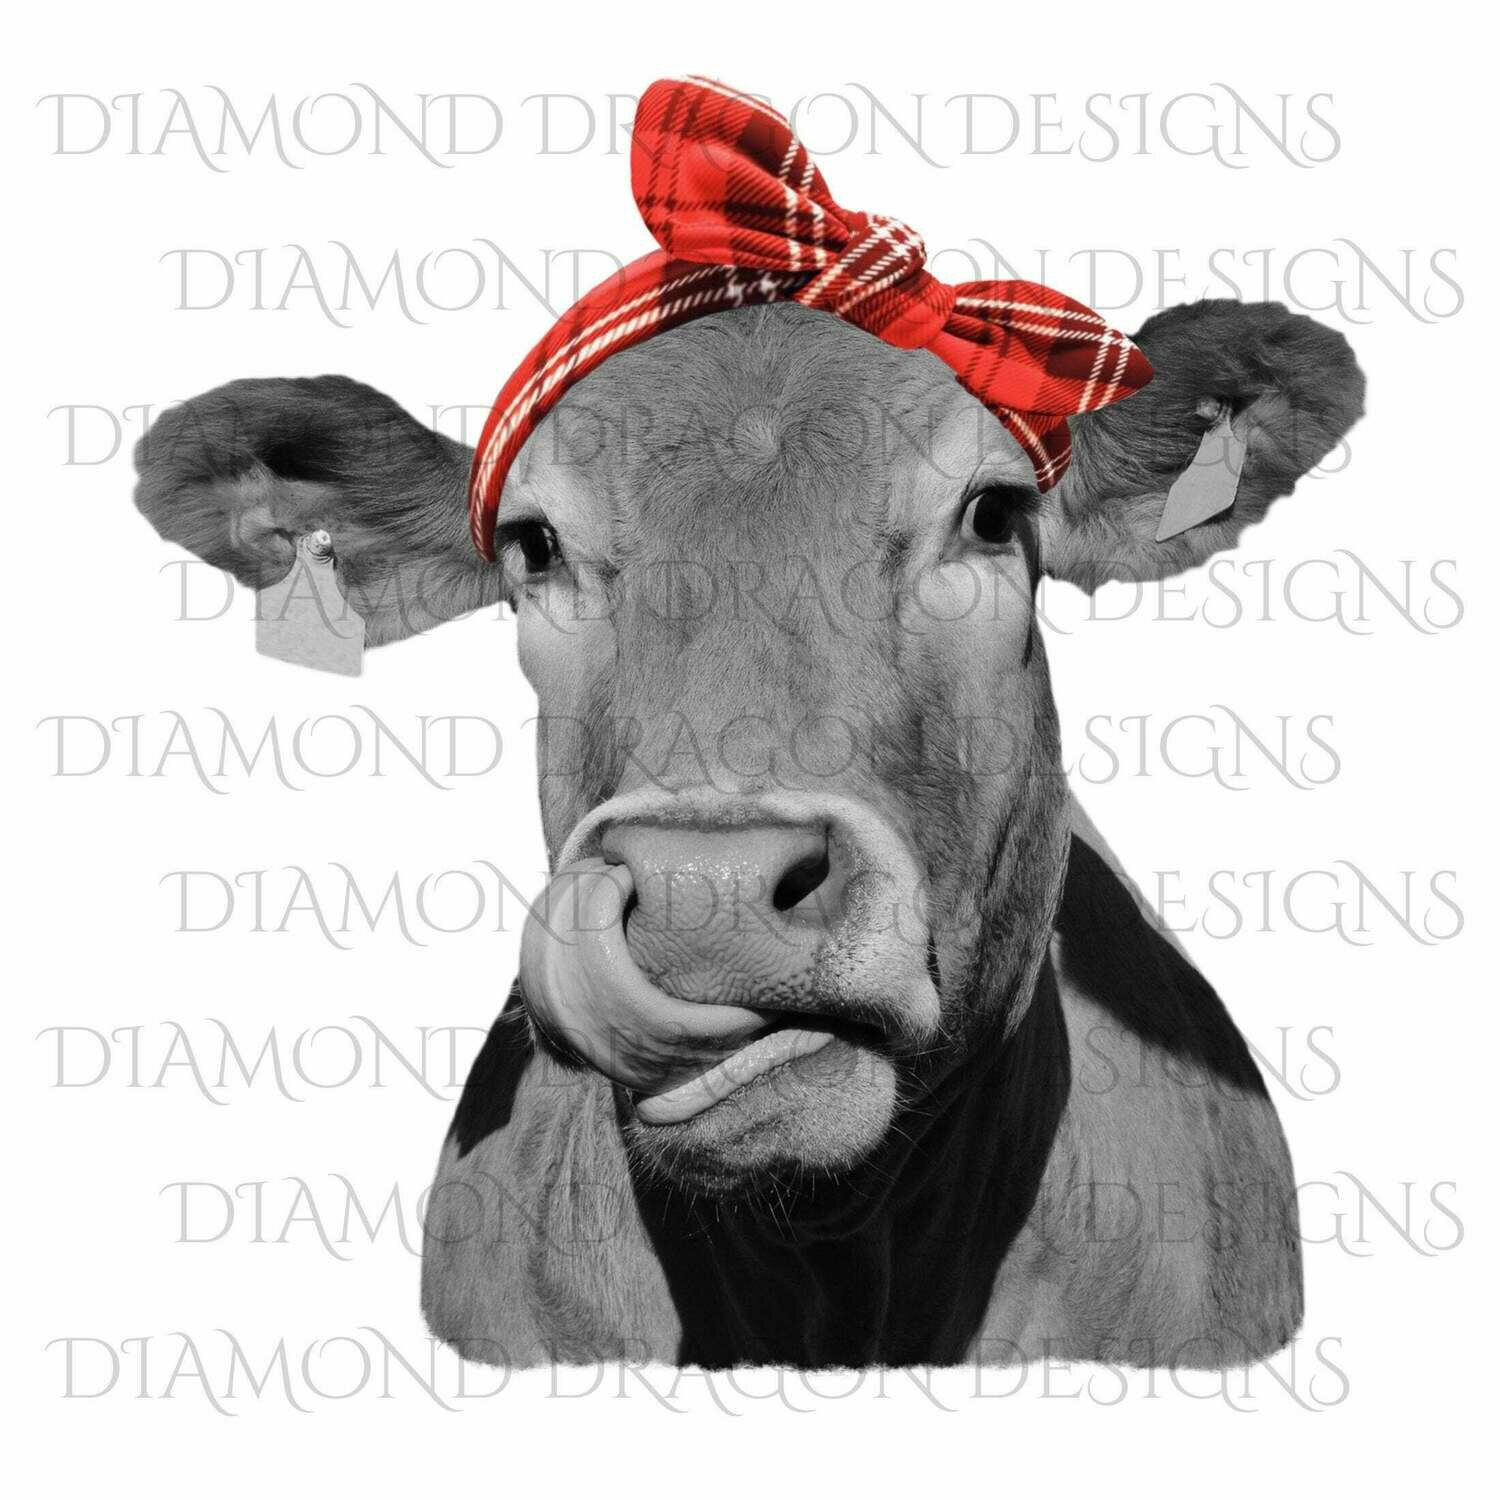 Cows - Heifer, Image, Cute Cow with Red Plaid Bandana, Cowlick, Cow Tongue Out, Heifer, Digital Image